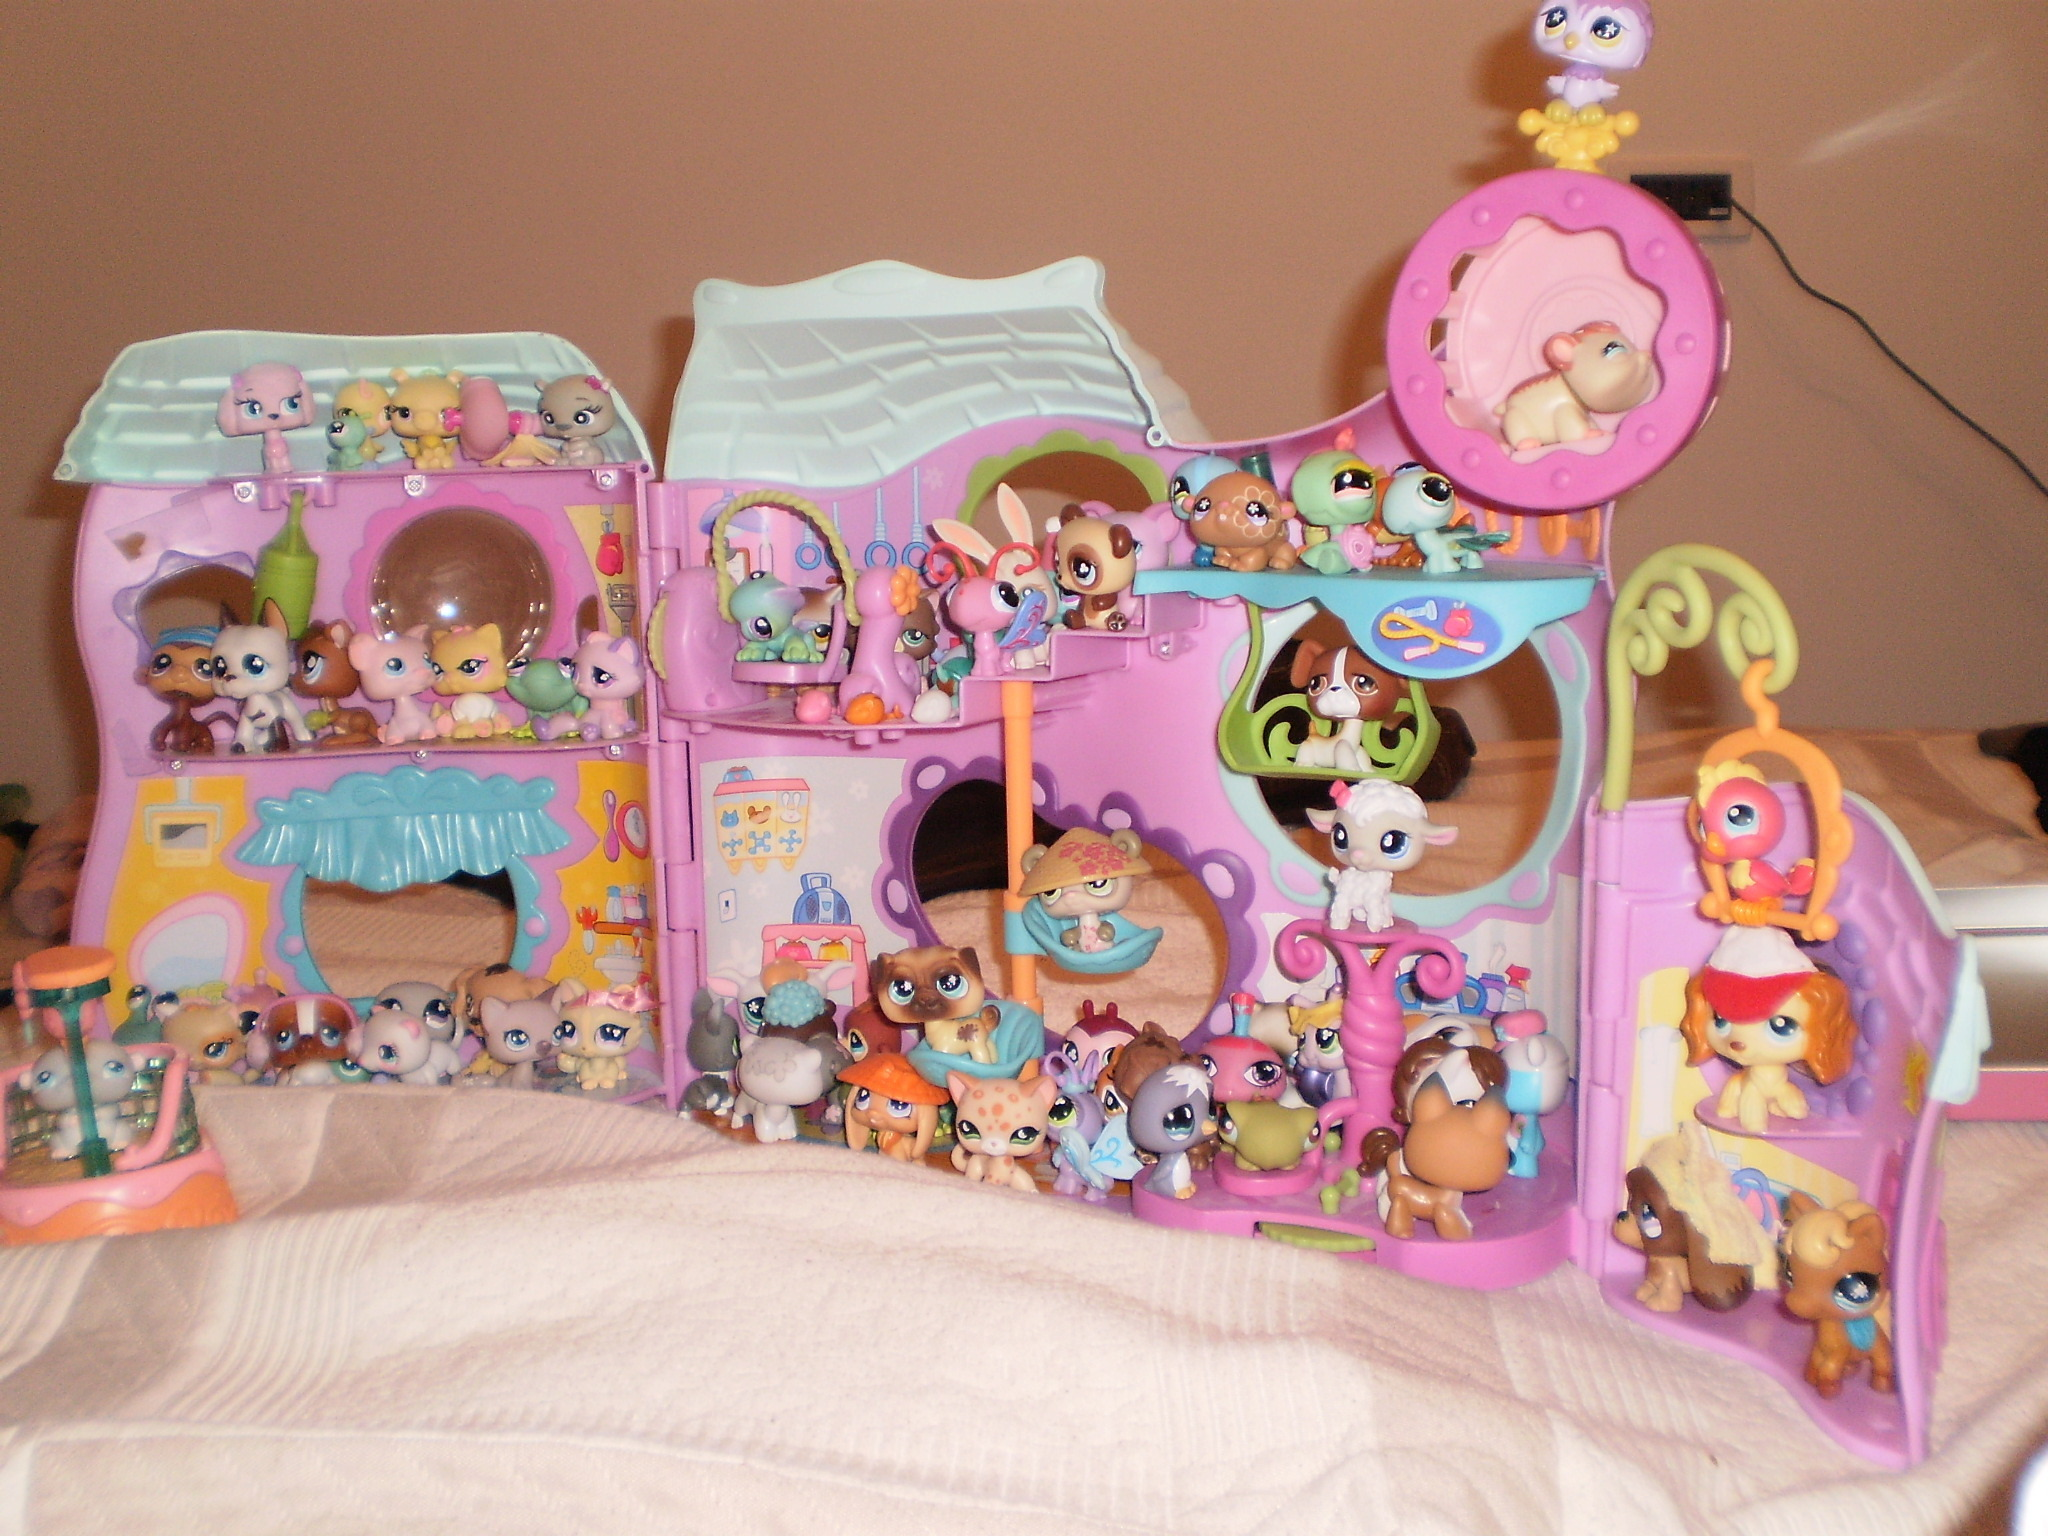 Littlest Pet Shop images LPS 2009 wallpaper photos 6800725   Page 2 2048x1536